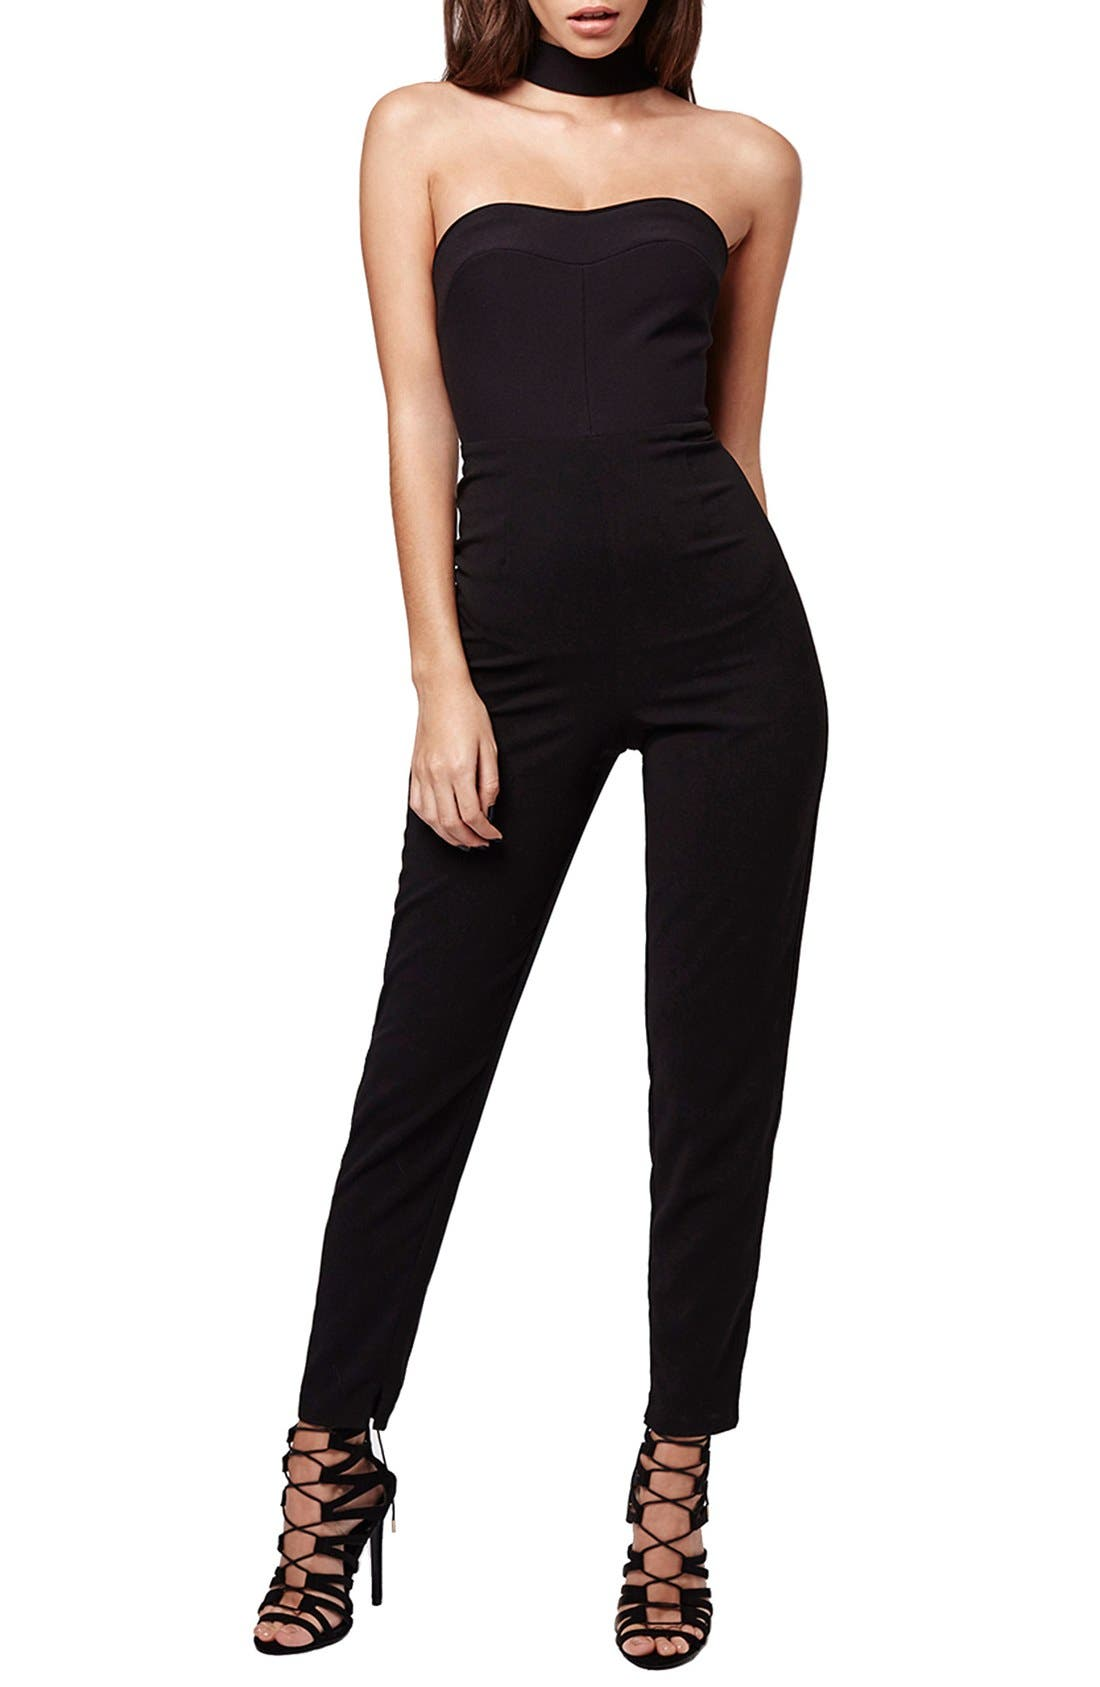 Main Image - KENDALL + KYLIE at Topshop High Neck Jumpsuit